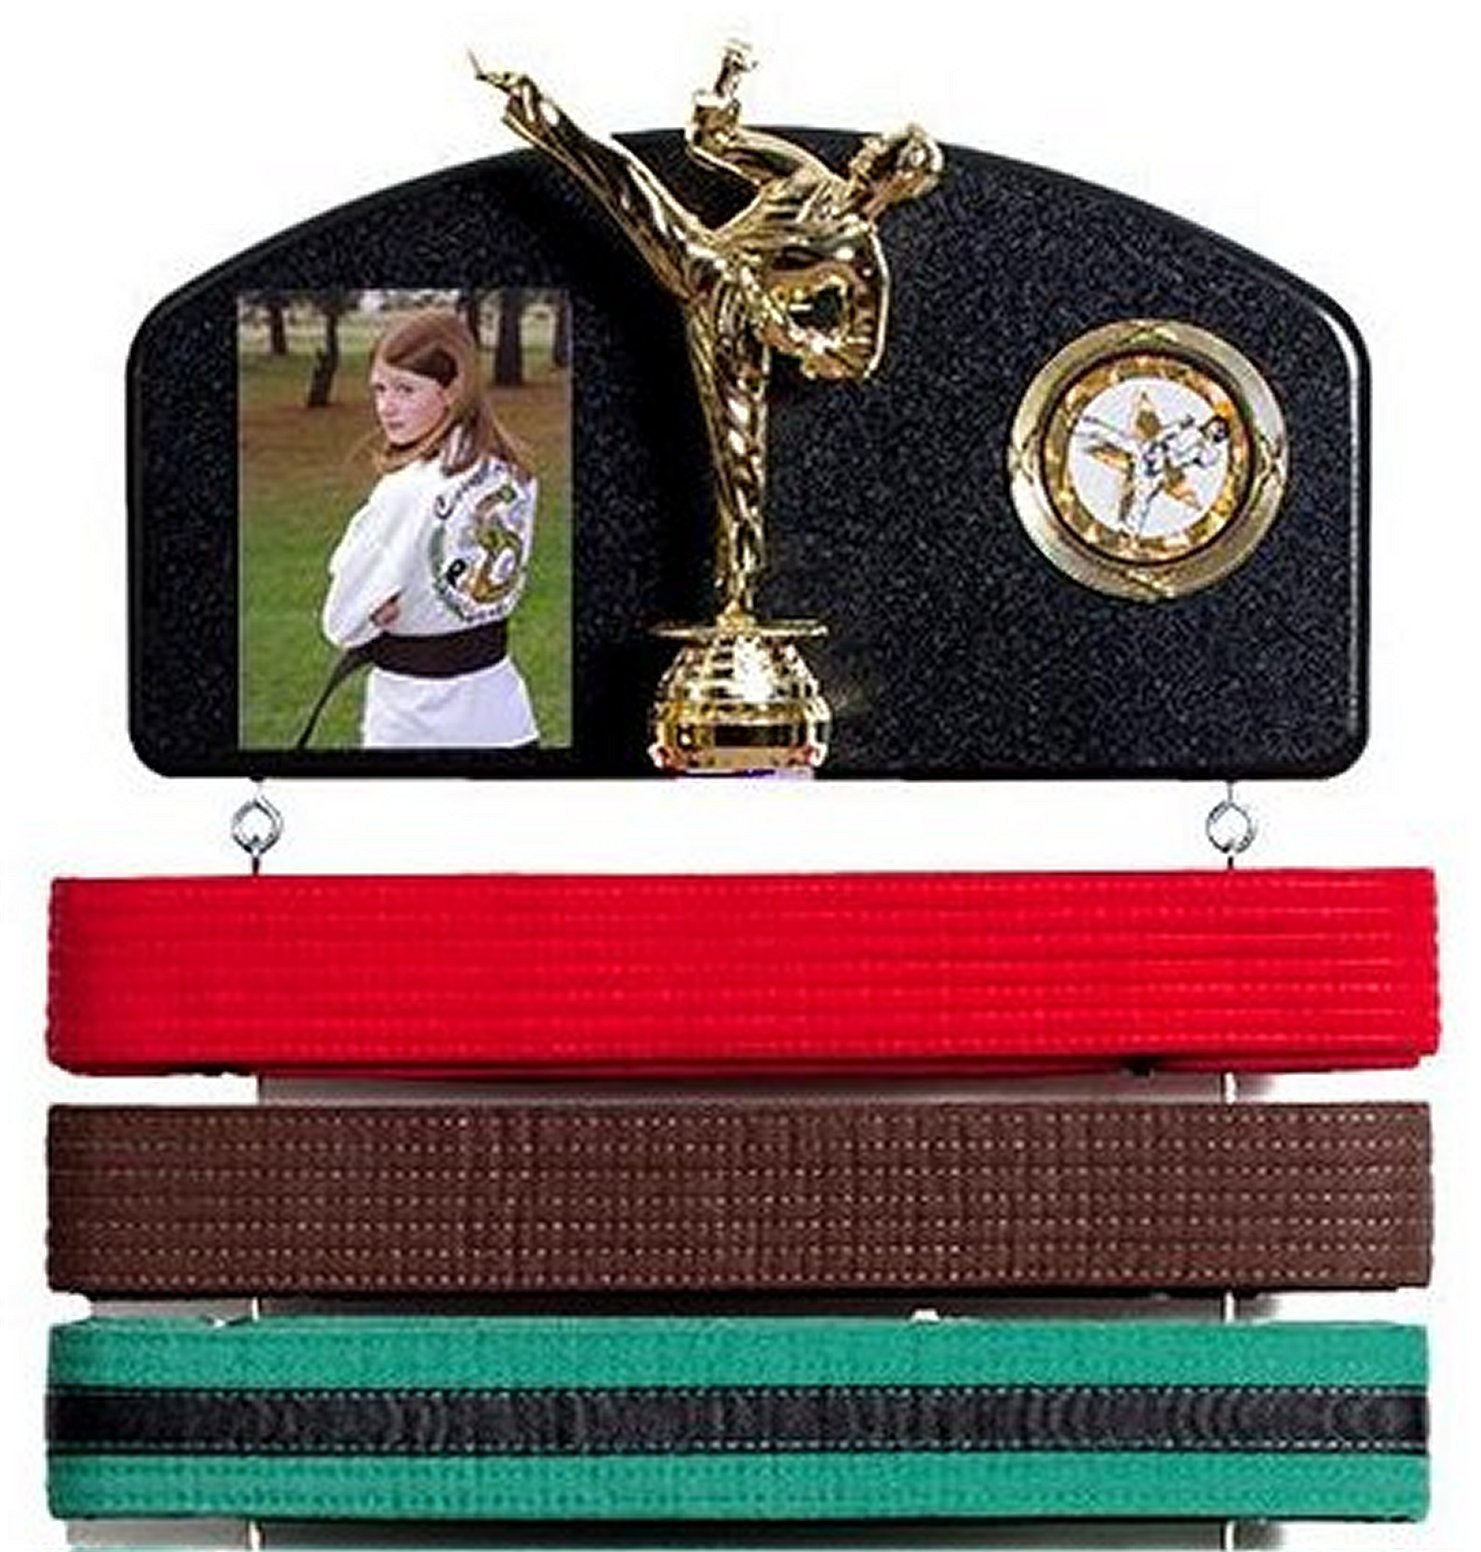 Martial arts belt display. Expandable to hold ALL your belts ! Male Trophy style.